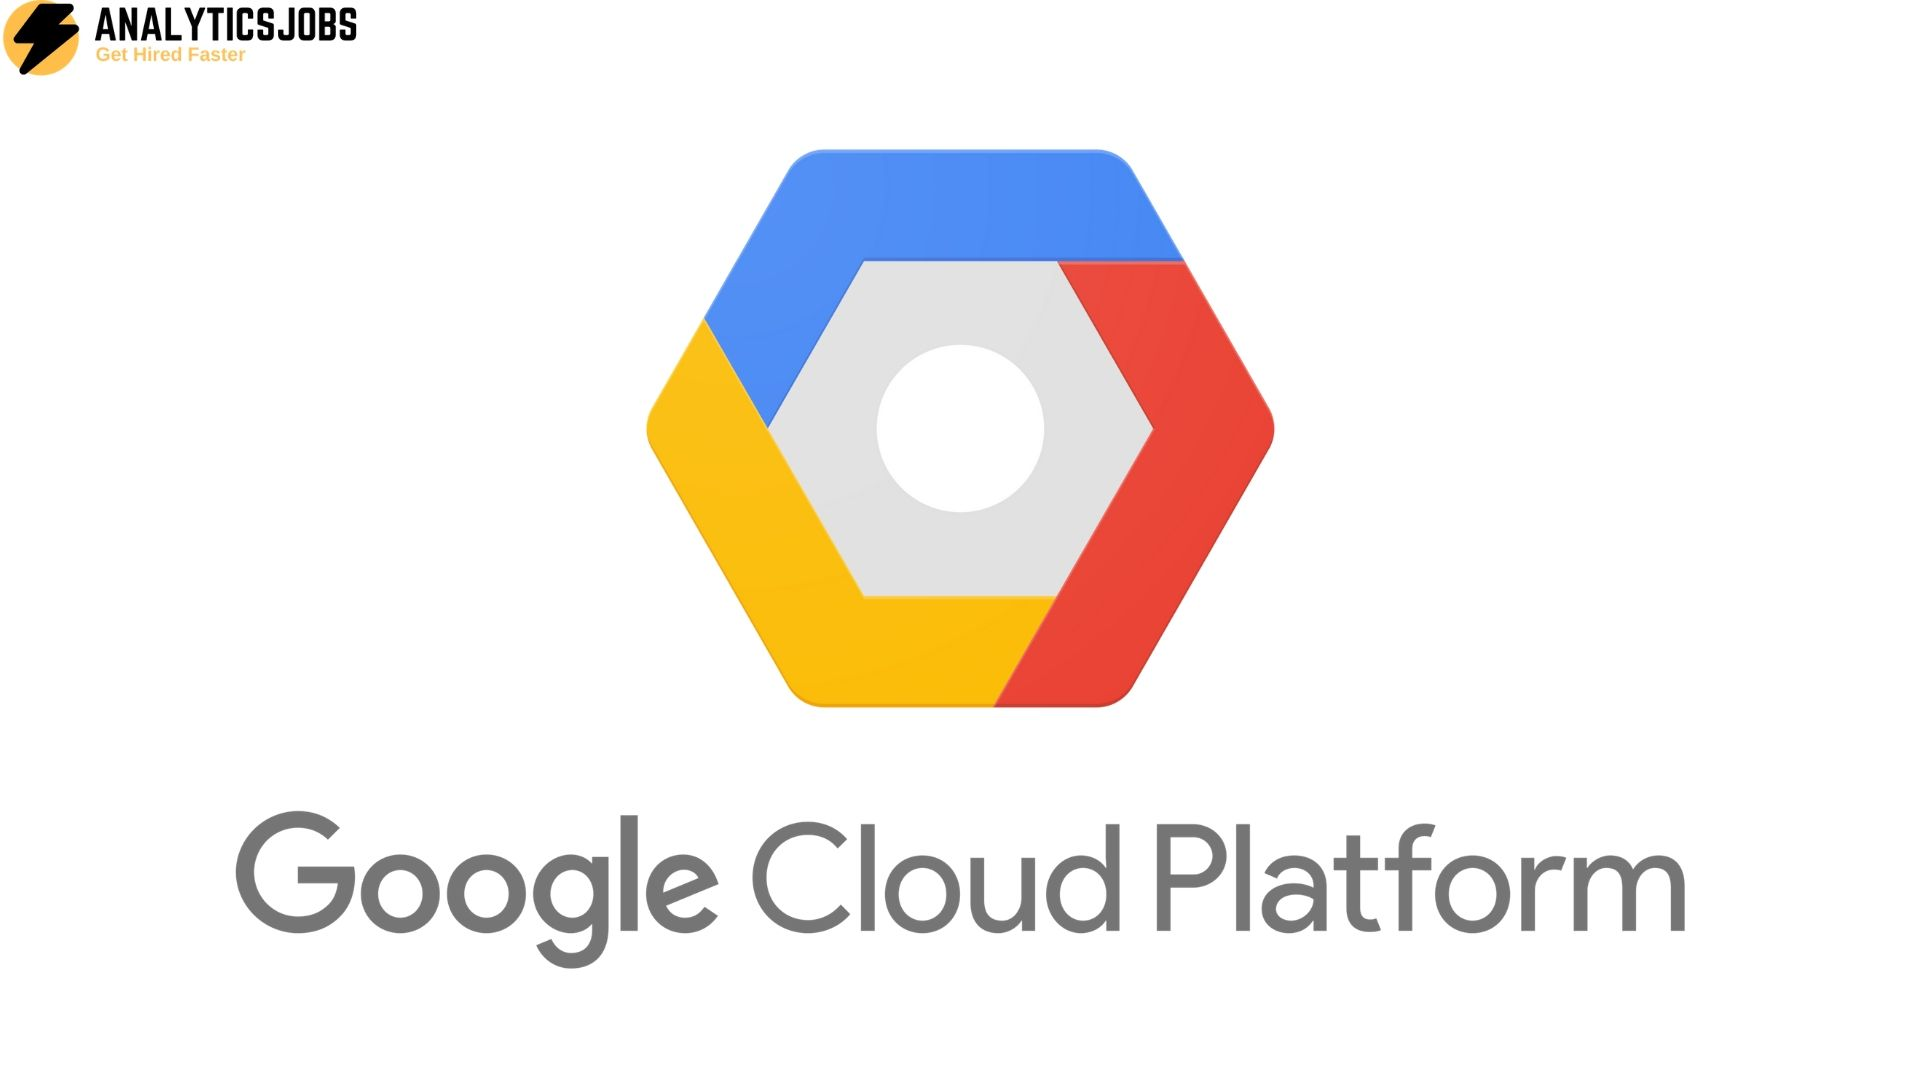 Google has announced its plans to open up a Delhi cloud region